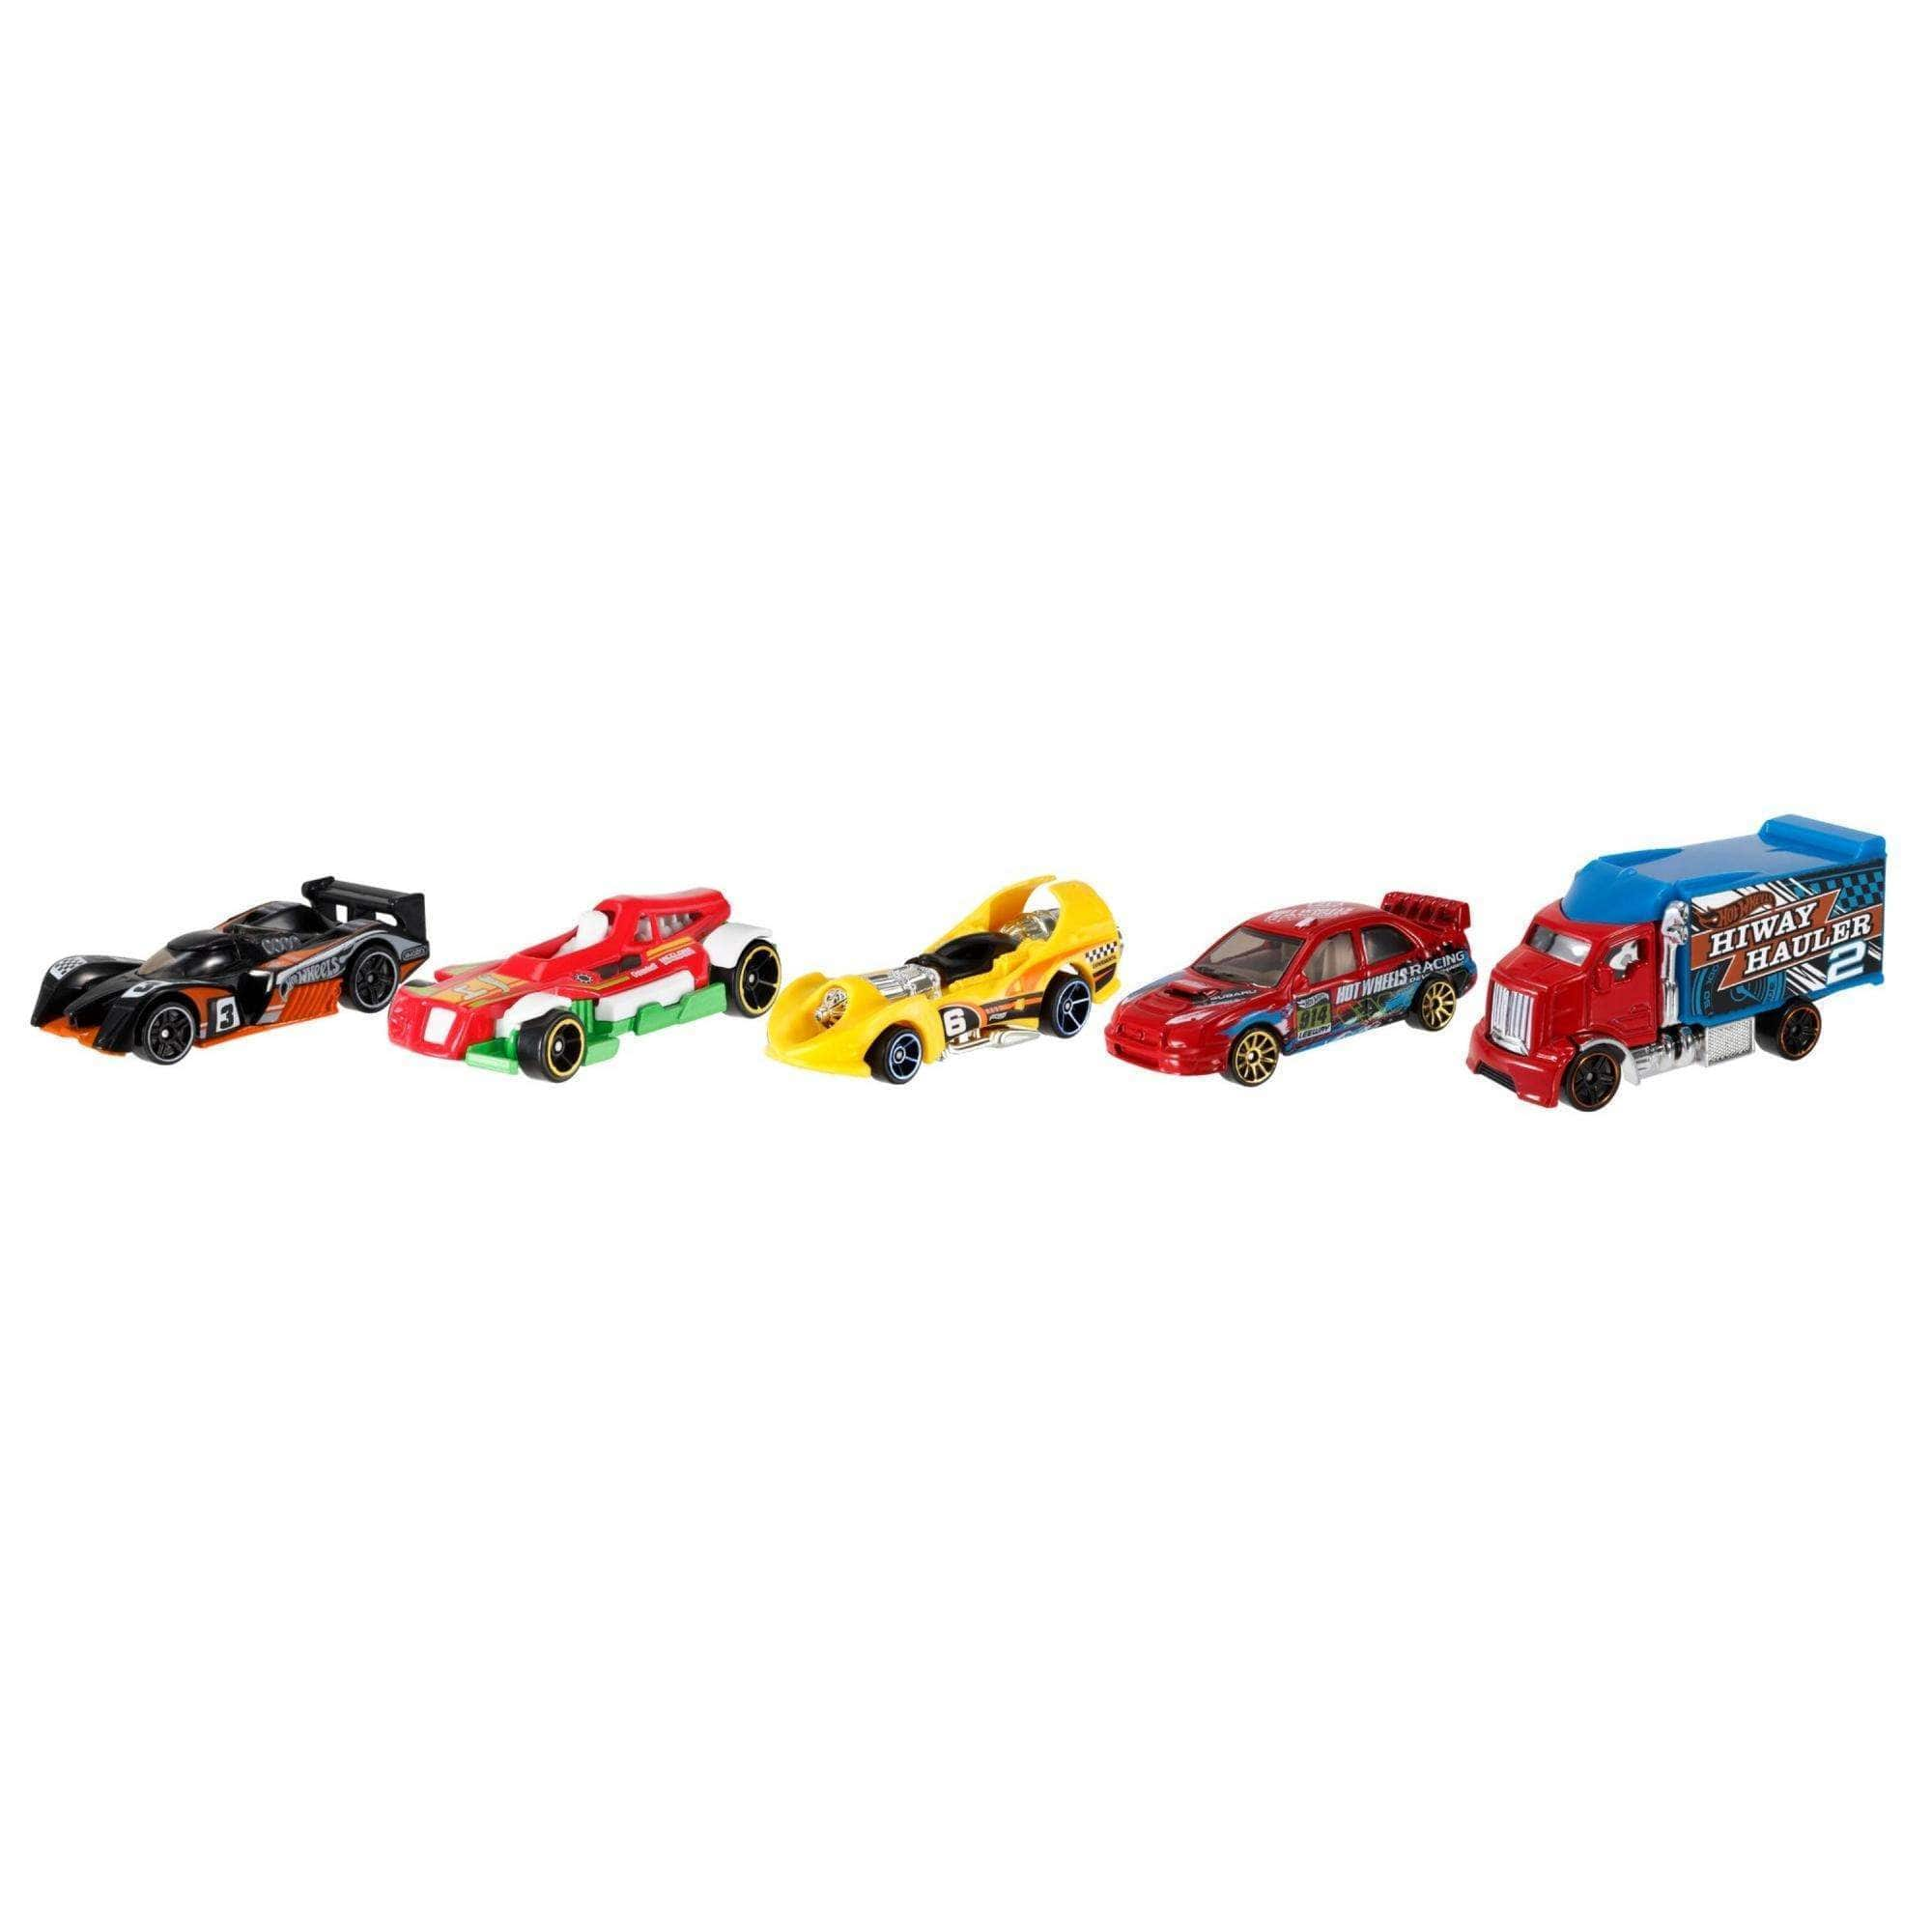 Hot Wheels 5-Car Gift Pack (Styles May Vary)  $4.55